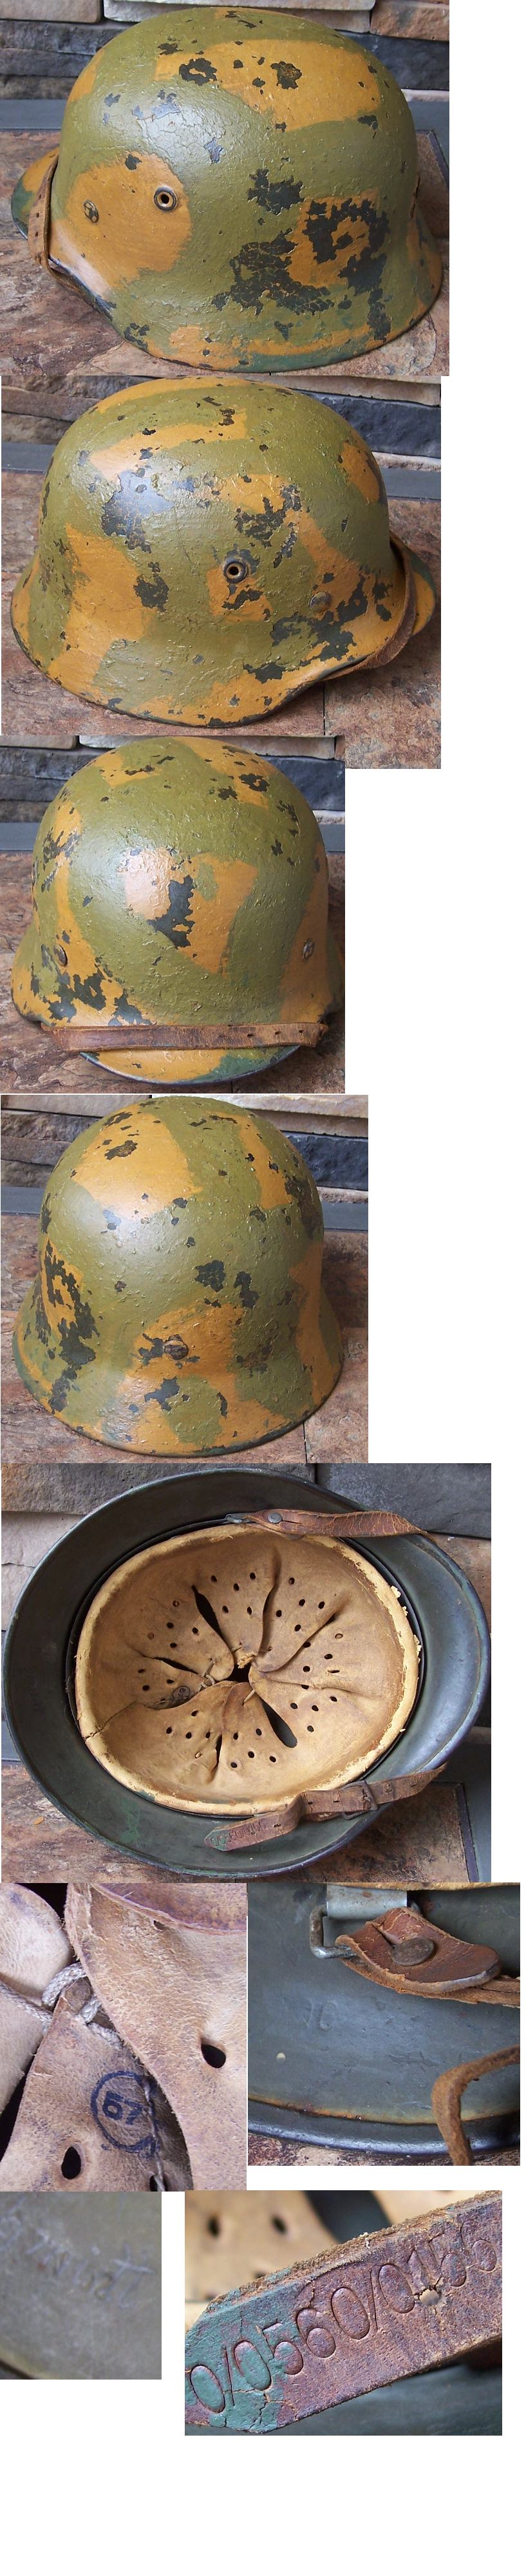 M40 Army Camo Helmet by Q64